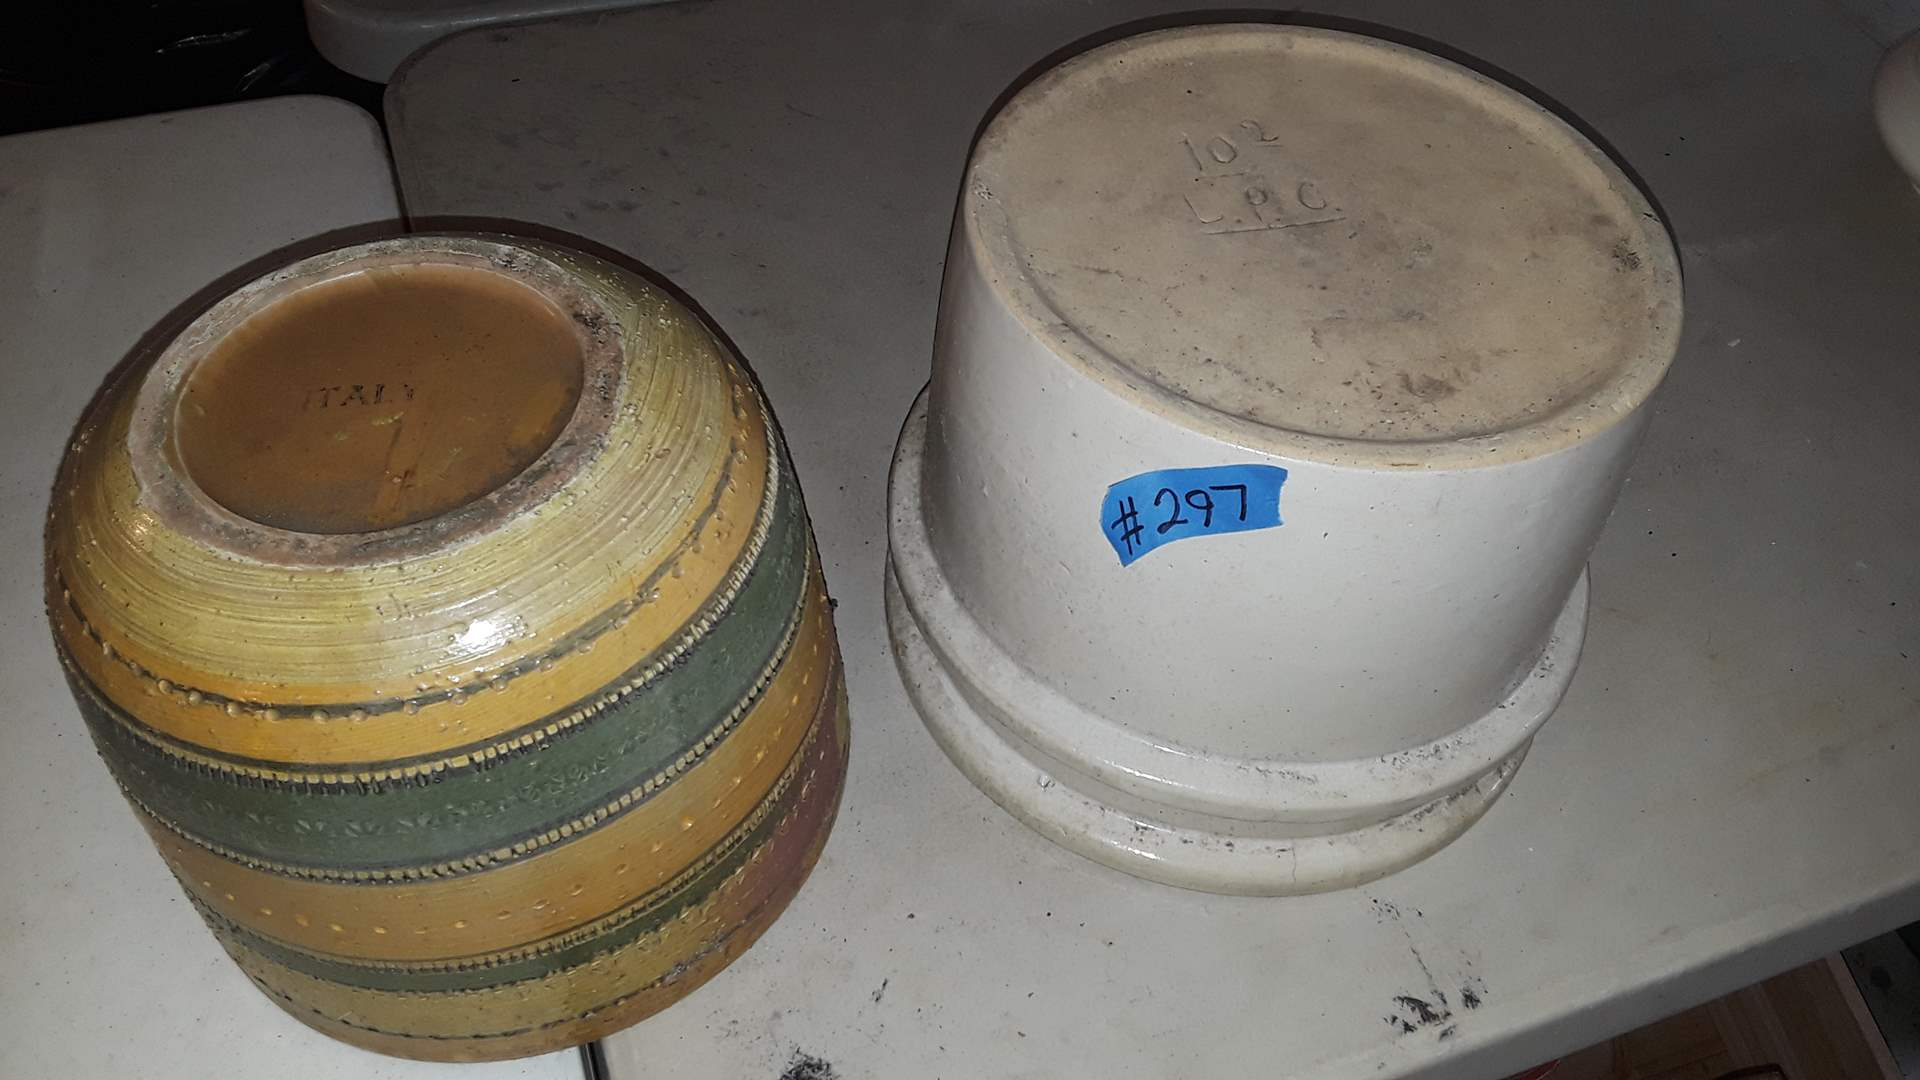 Lot # 297 HEAVY UNUSUAL CROCK SIGNED L.P.C. AND FLOWER POT ITALY